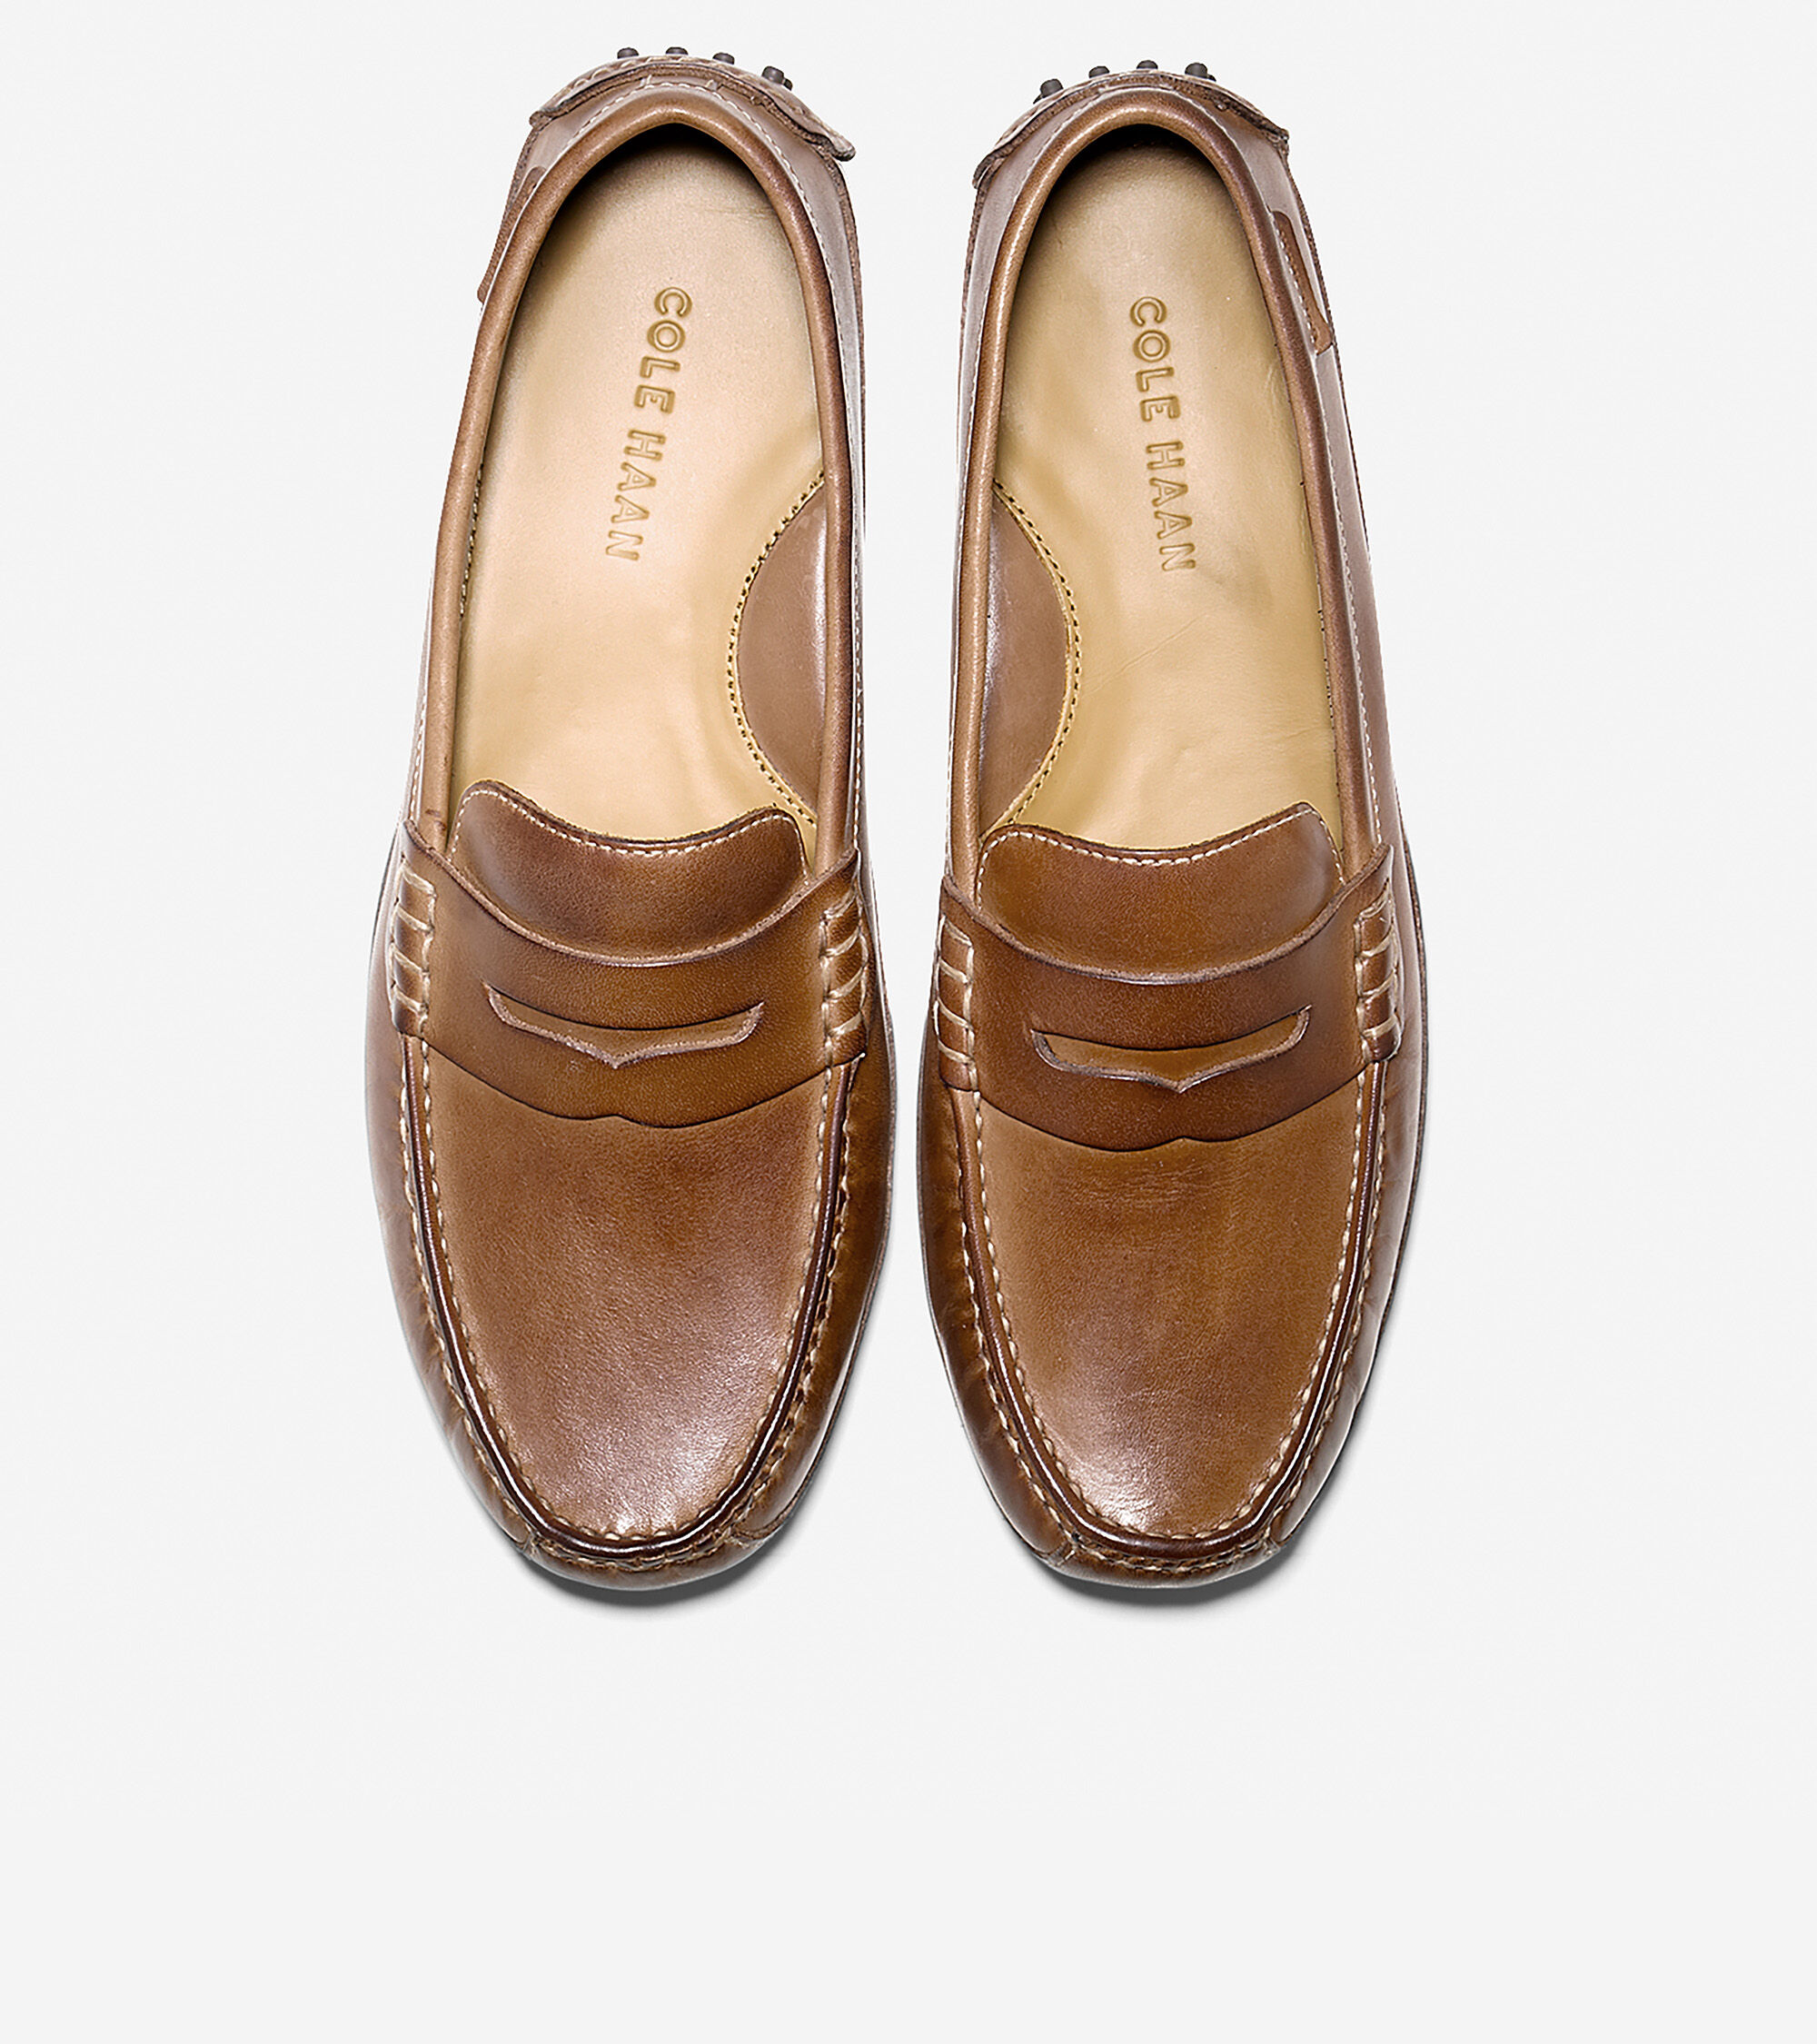 Cole Haan Mens Grant Canoe Penny Driving Drivers Slip-On Loafers Dress Shoes